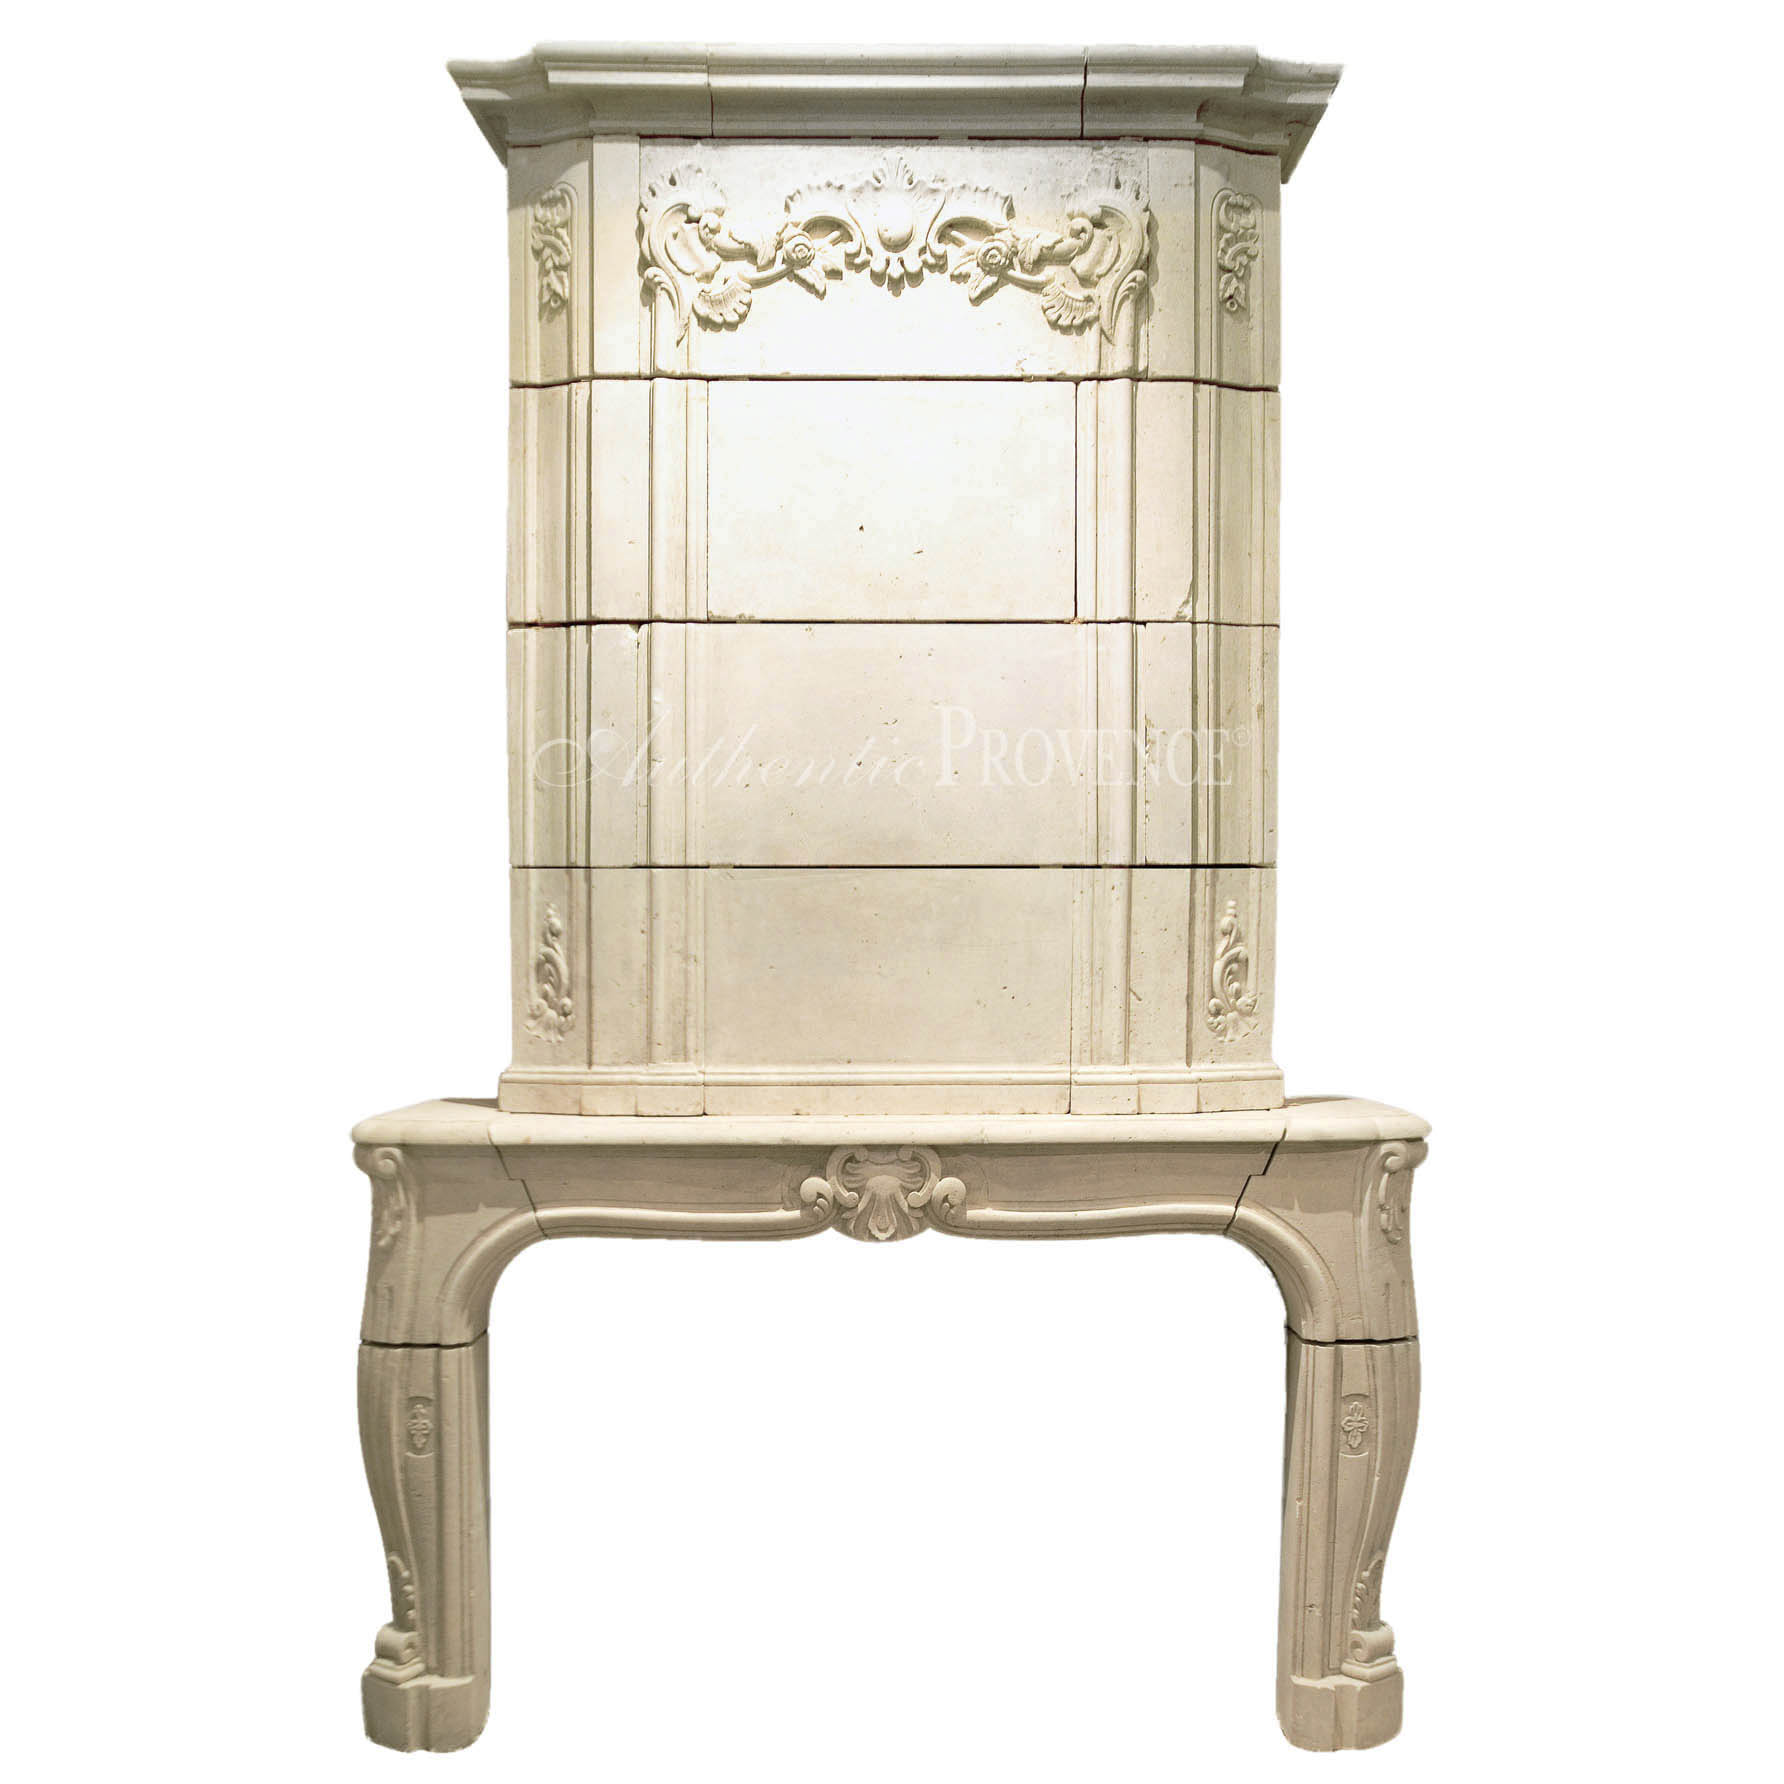 Antique French Limestone Fireplace Mantel: Cheminee Rocailles